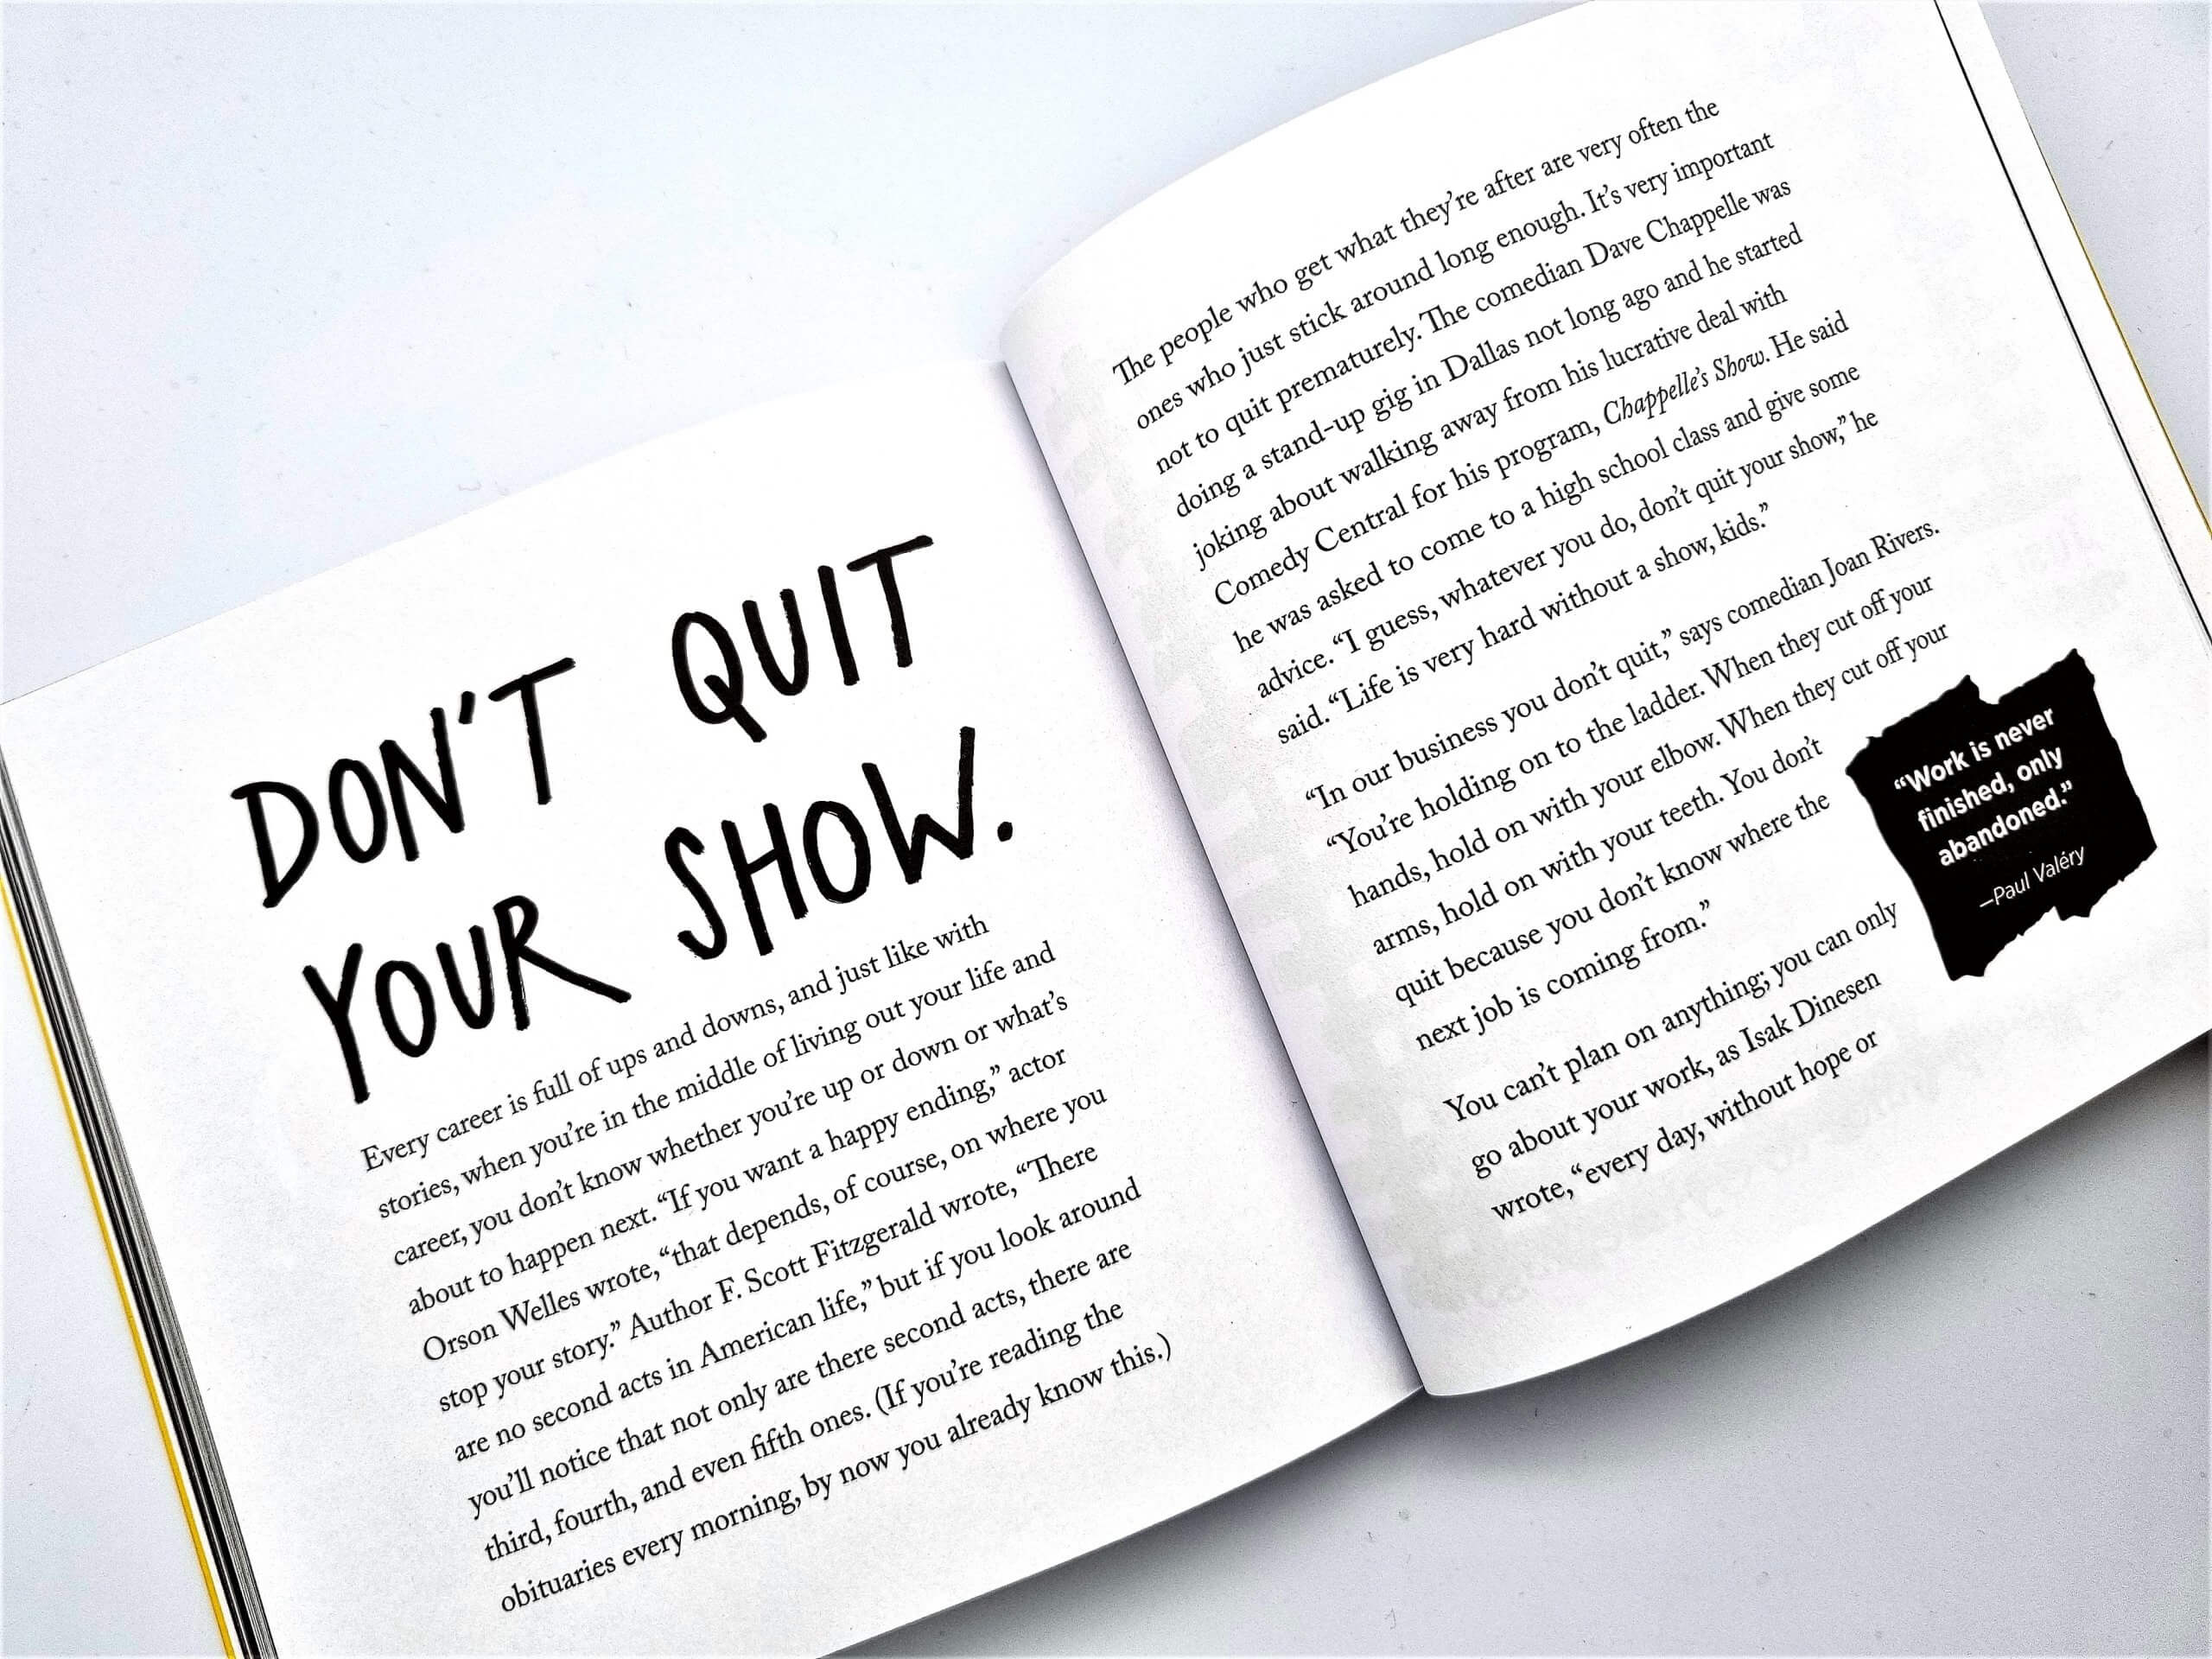 Show Your Work by Austin Kleon - Book Review - The Logo Creative (11)